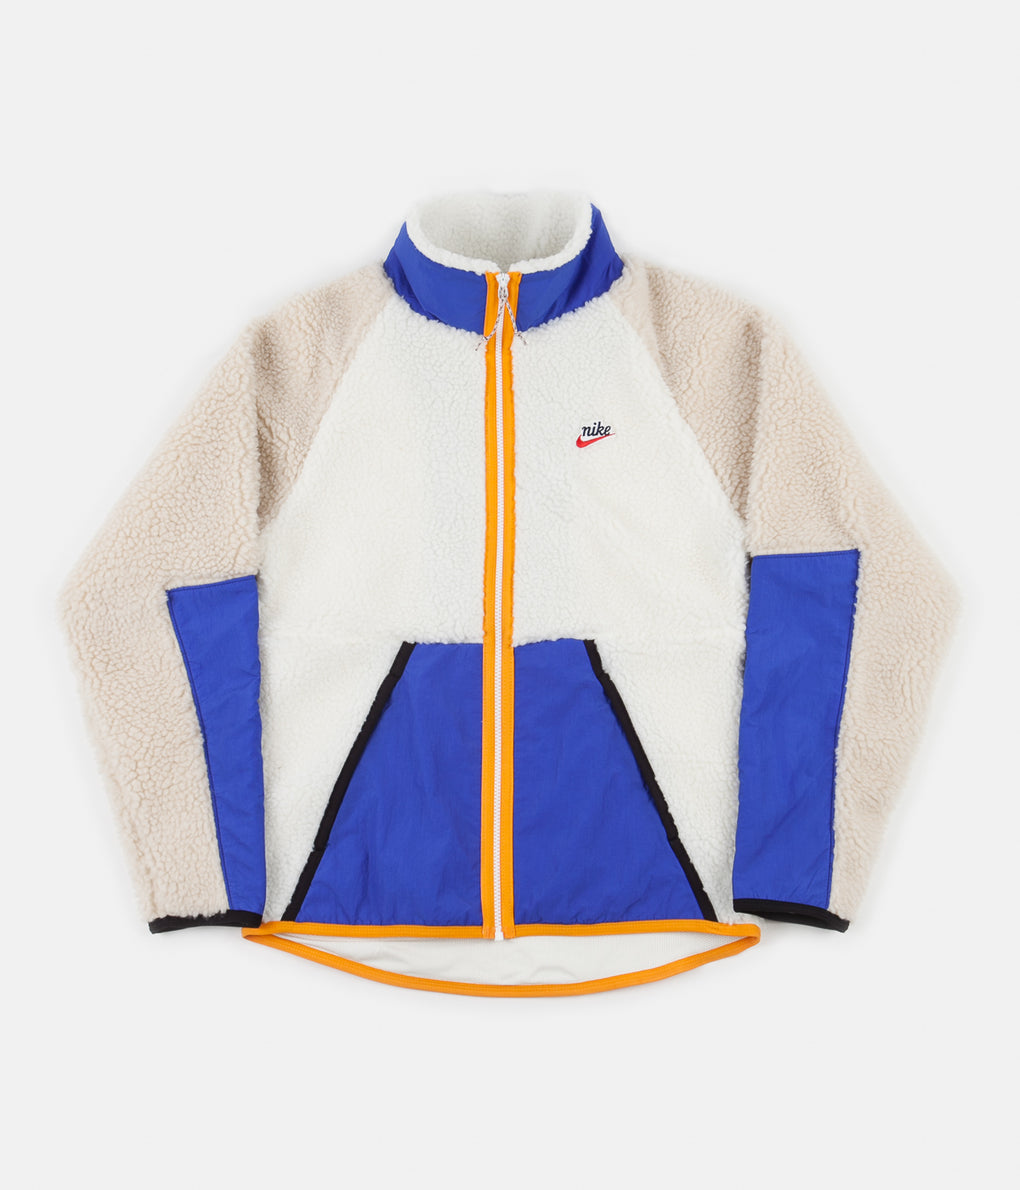 Nike Winter Fleece Jacket - Sail / Game Royal / Desert Sand